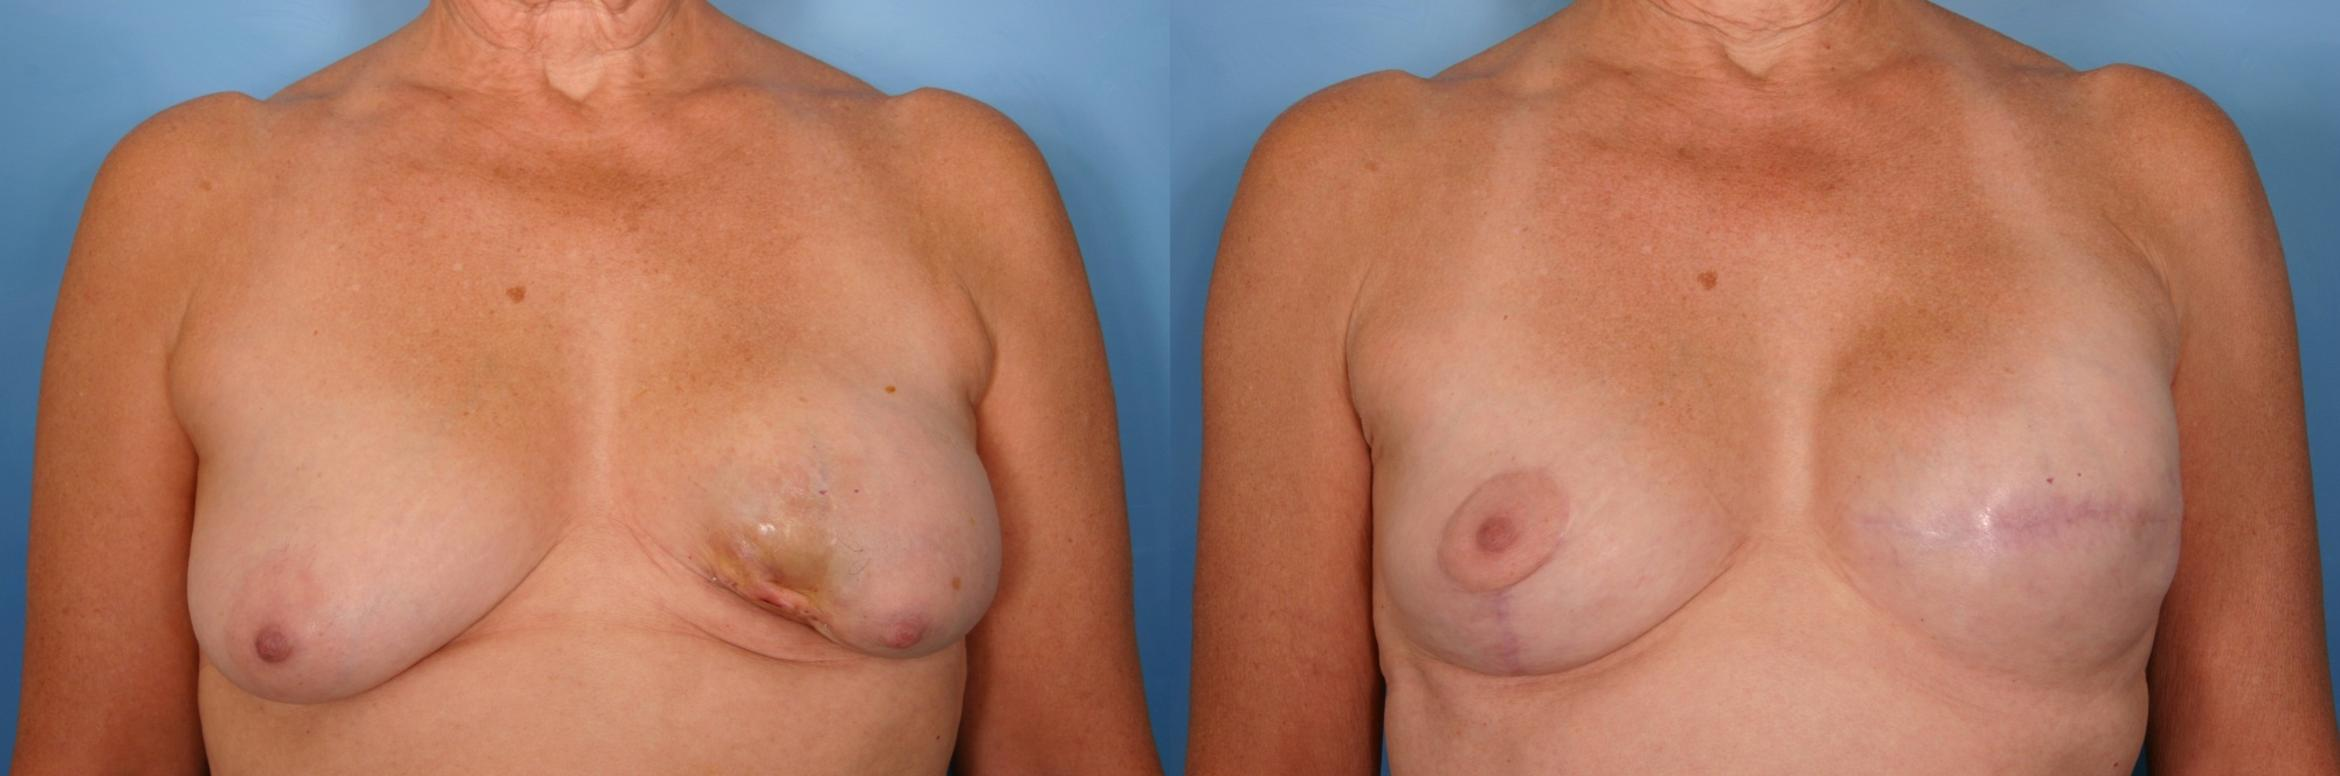 Breast Lift Case 34 Before & After View #1 | Naples, FL | Kent V. Hasen, M.D.